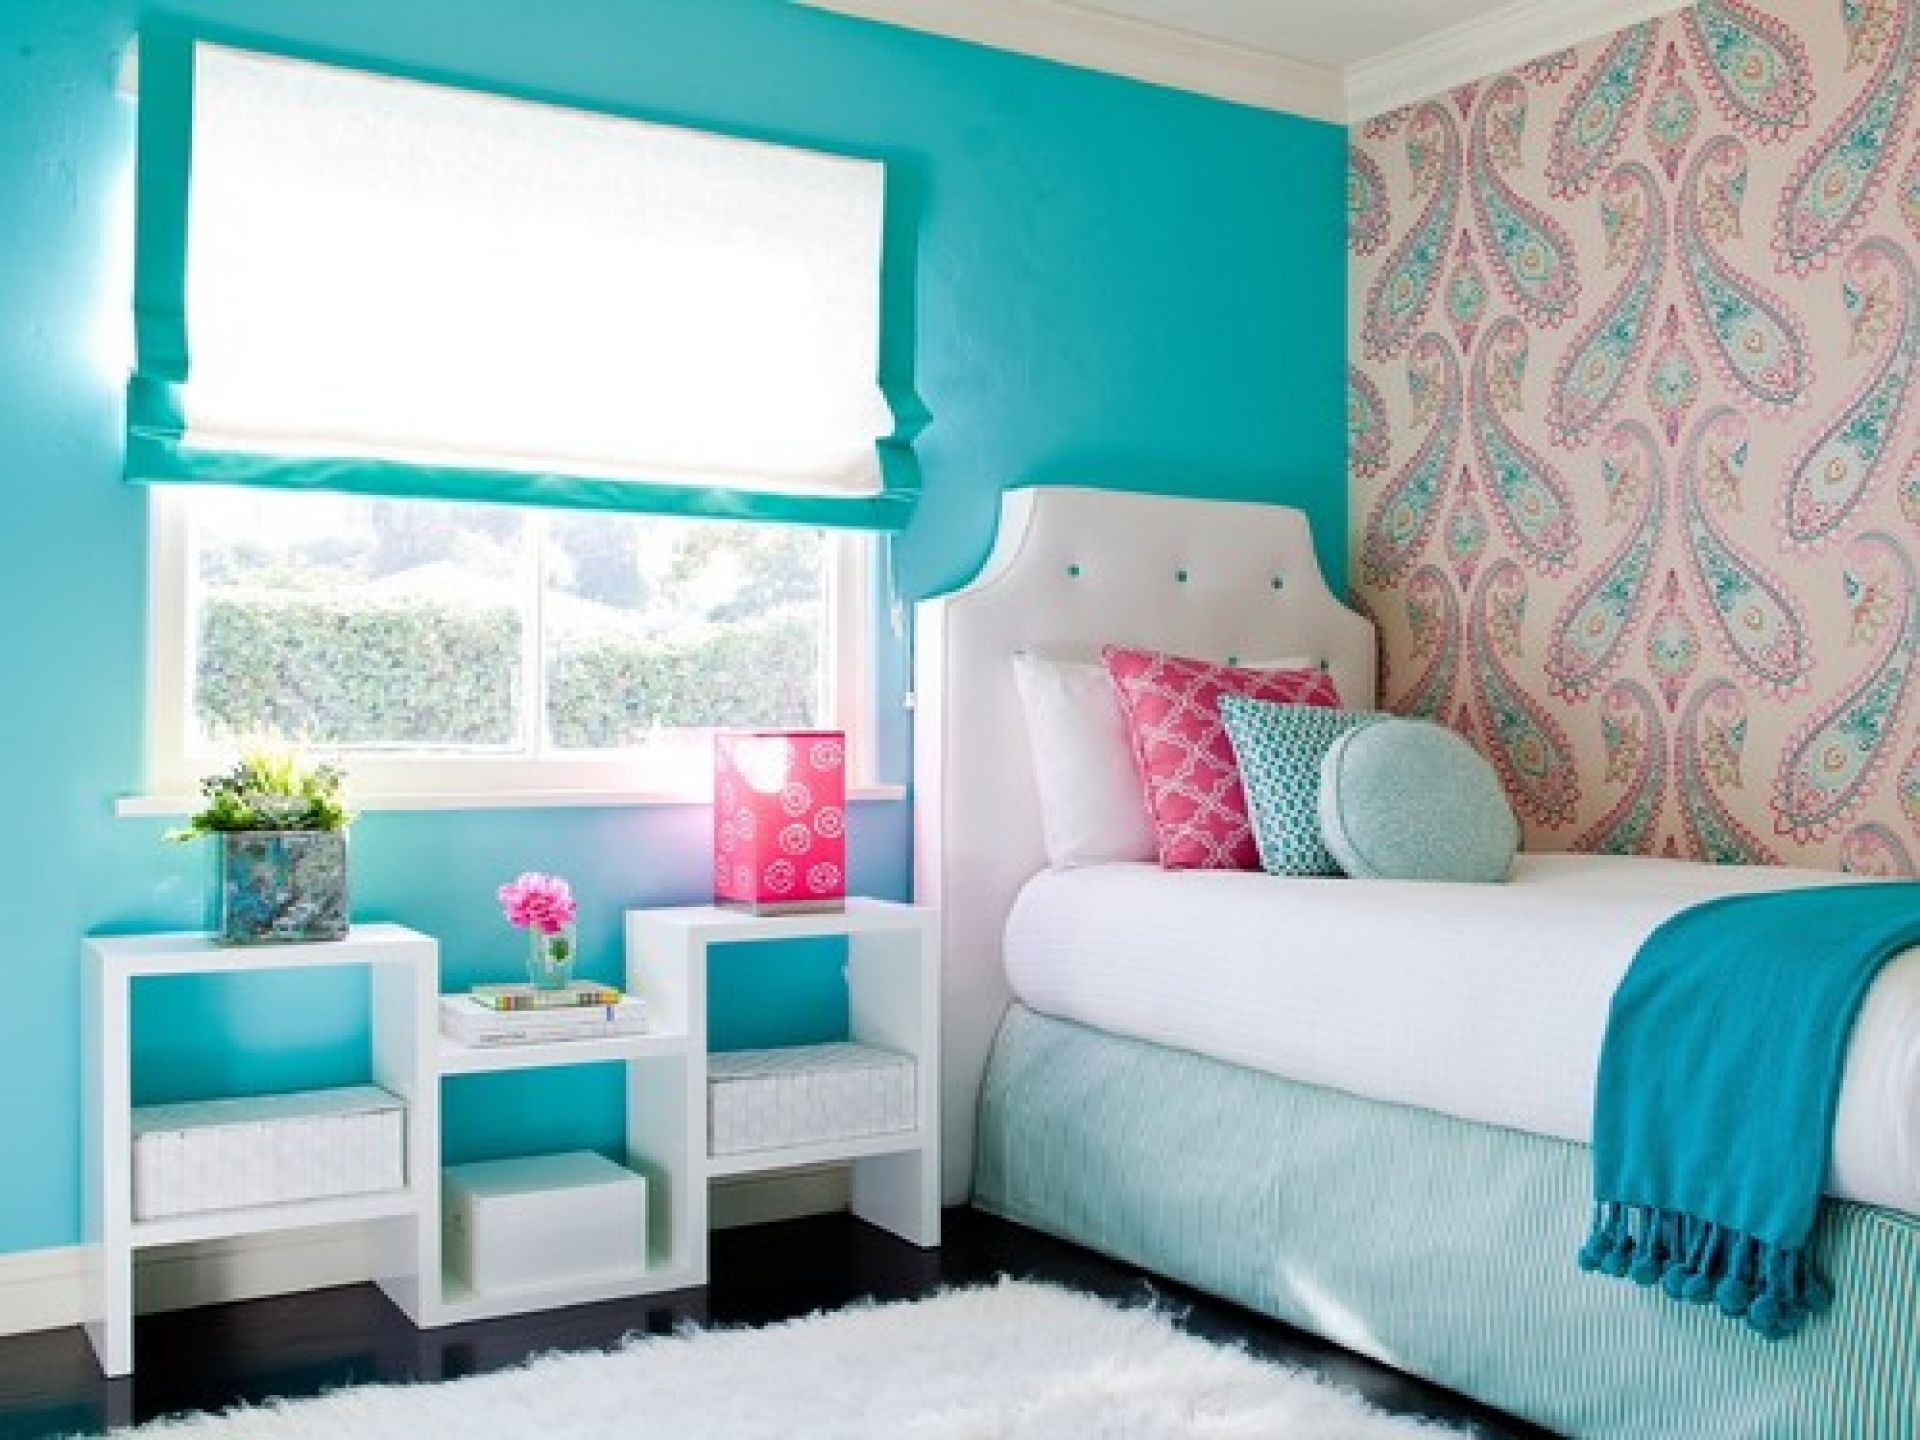 Girls Bedroom Paint Ideas Alluring Simple Design Comfy Room Colors Teenage Girl Bedroom Wall Paint Design Ideas